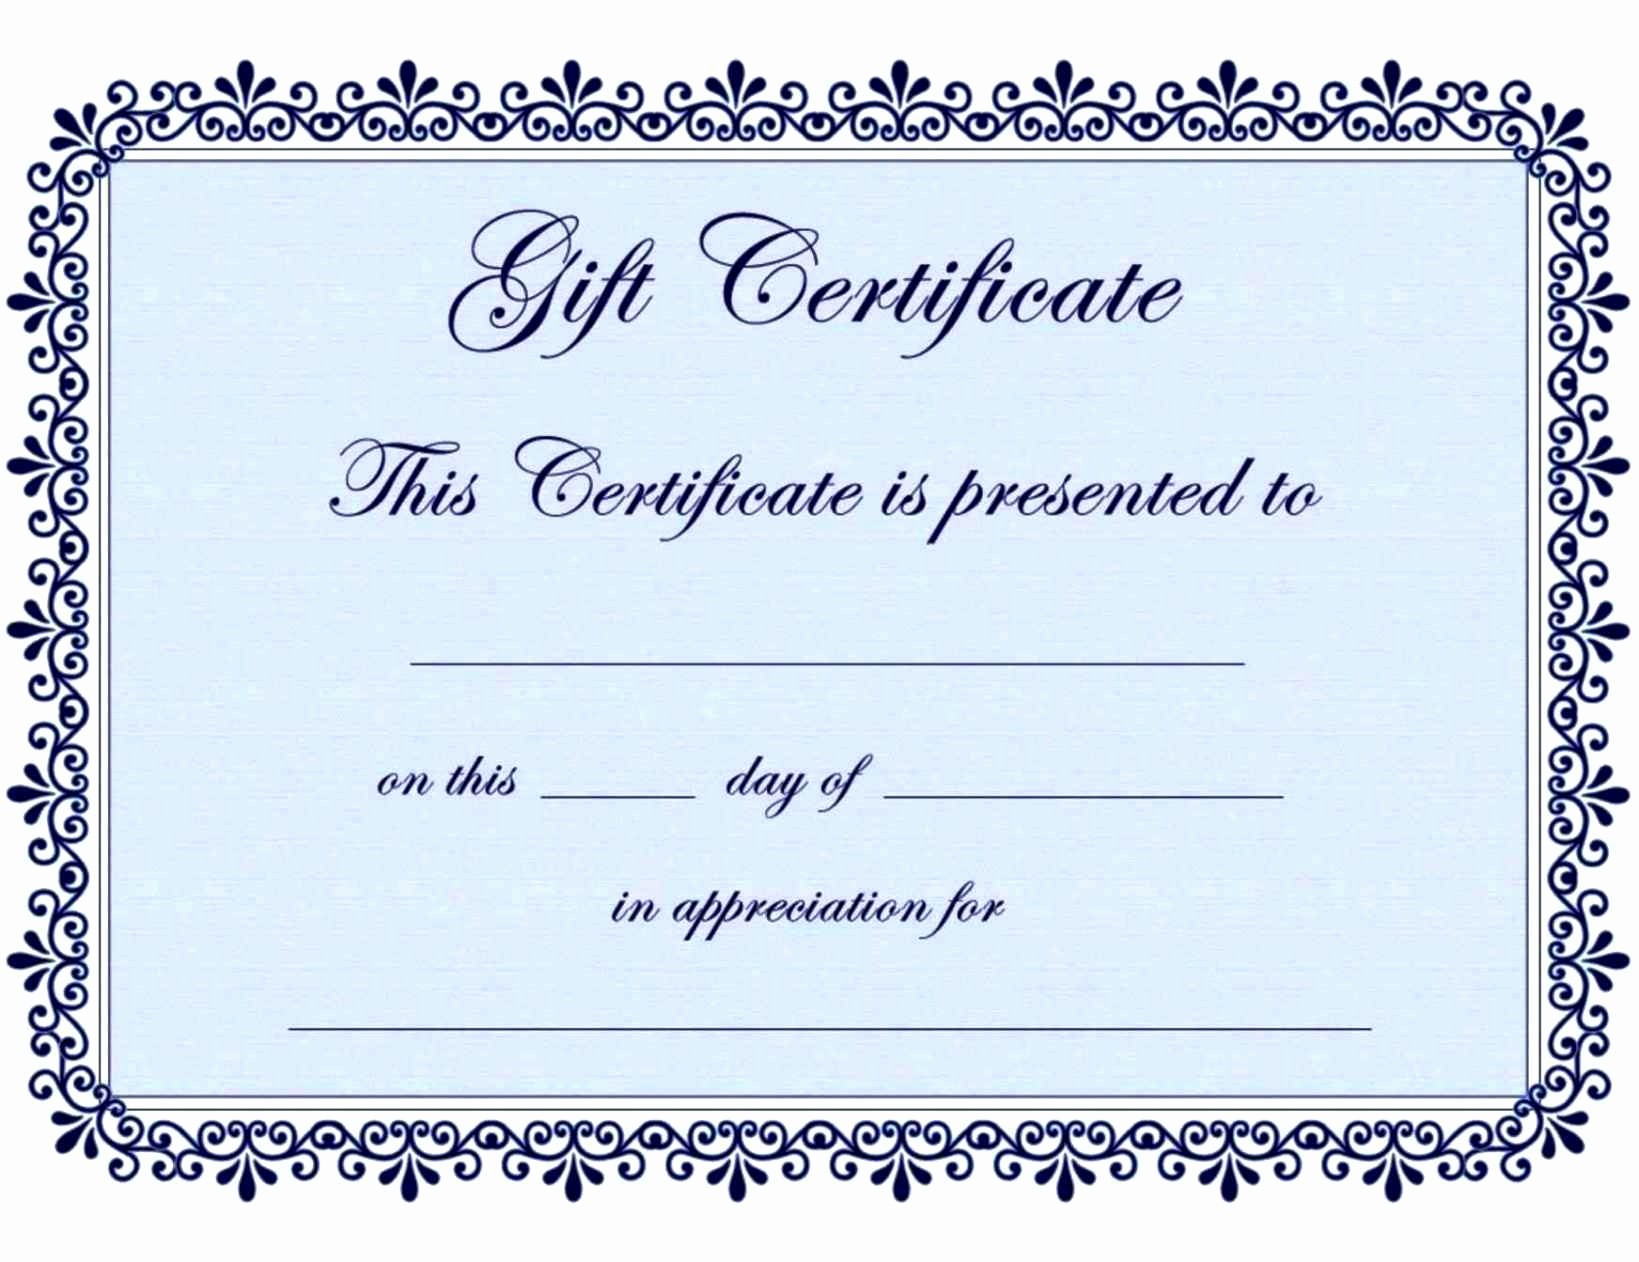 Blank Gift Certificates to Print Luxury Blank Printable Gift Certificates Template Update234